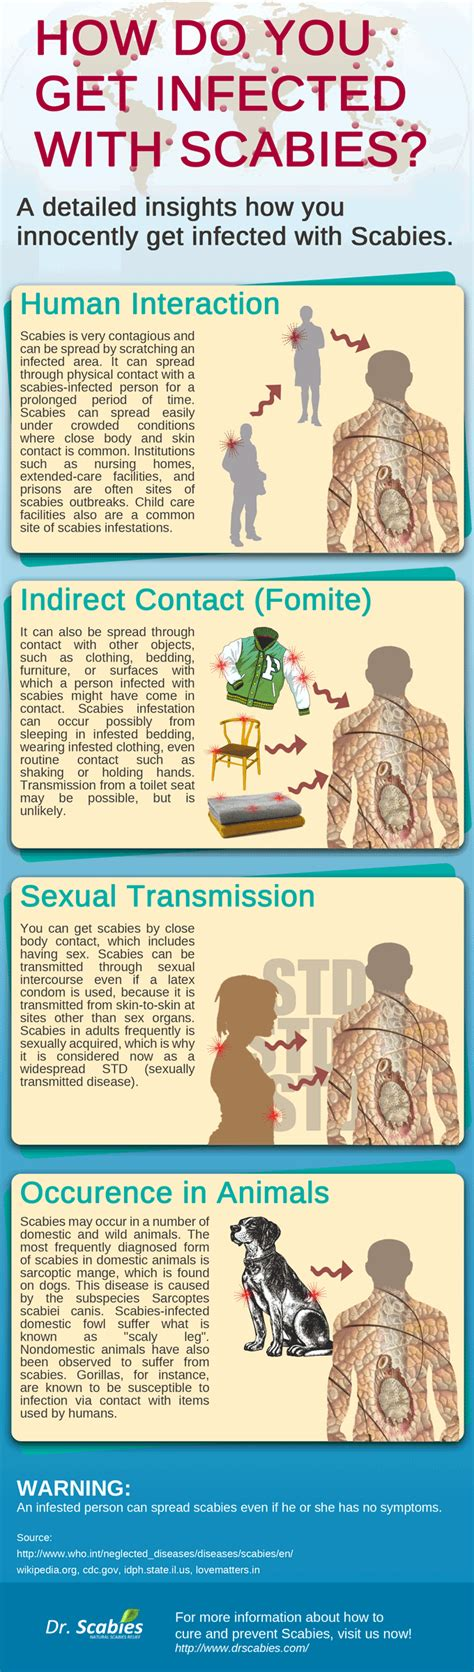 how do you get infected with scabies infographic best